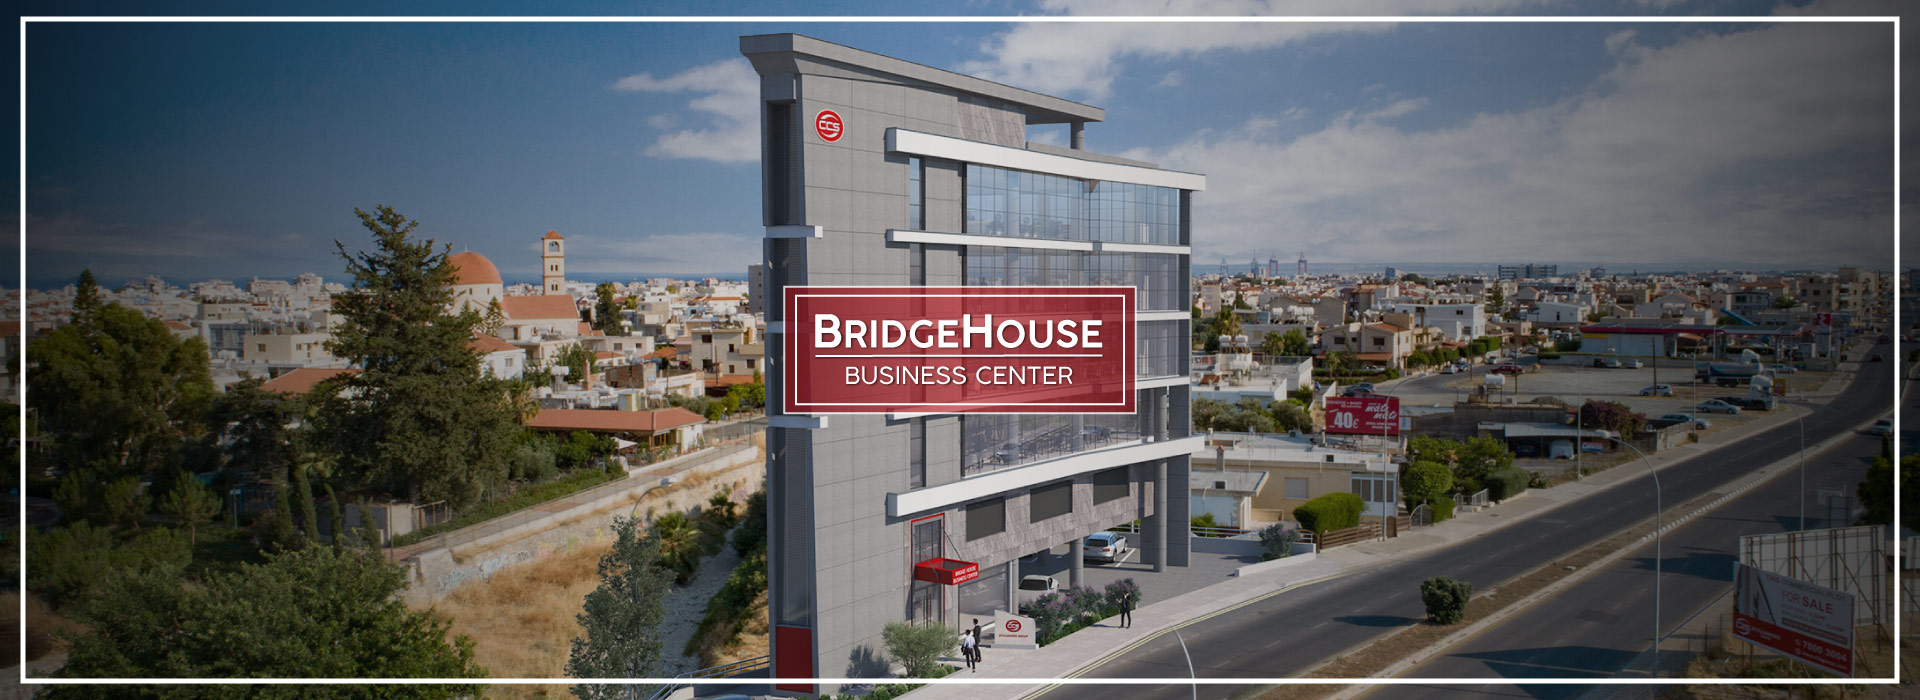 BRIDGEHOUSE